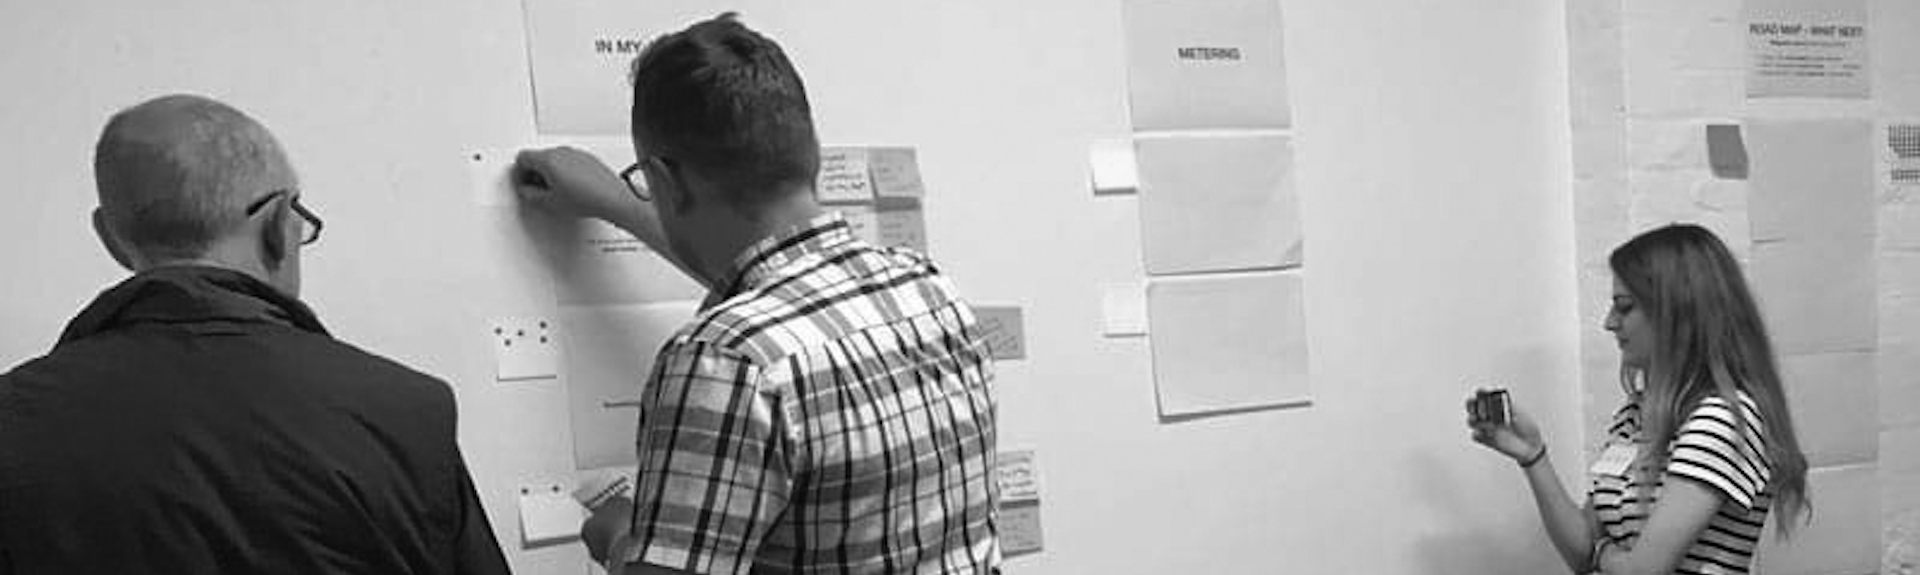 Northumbrian Water Group design sprint resize